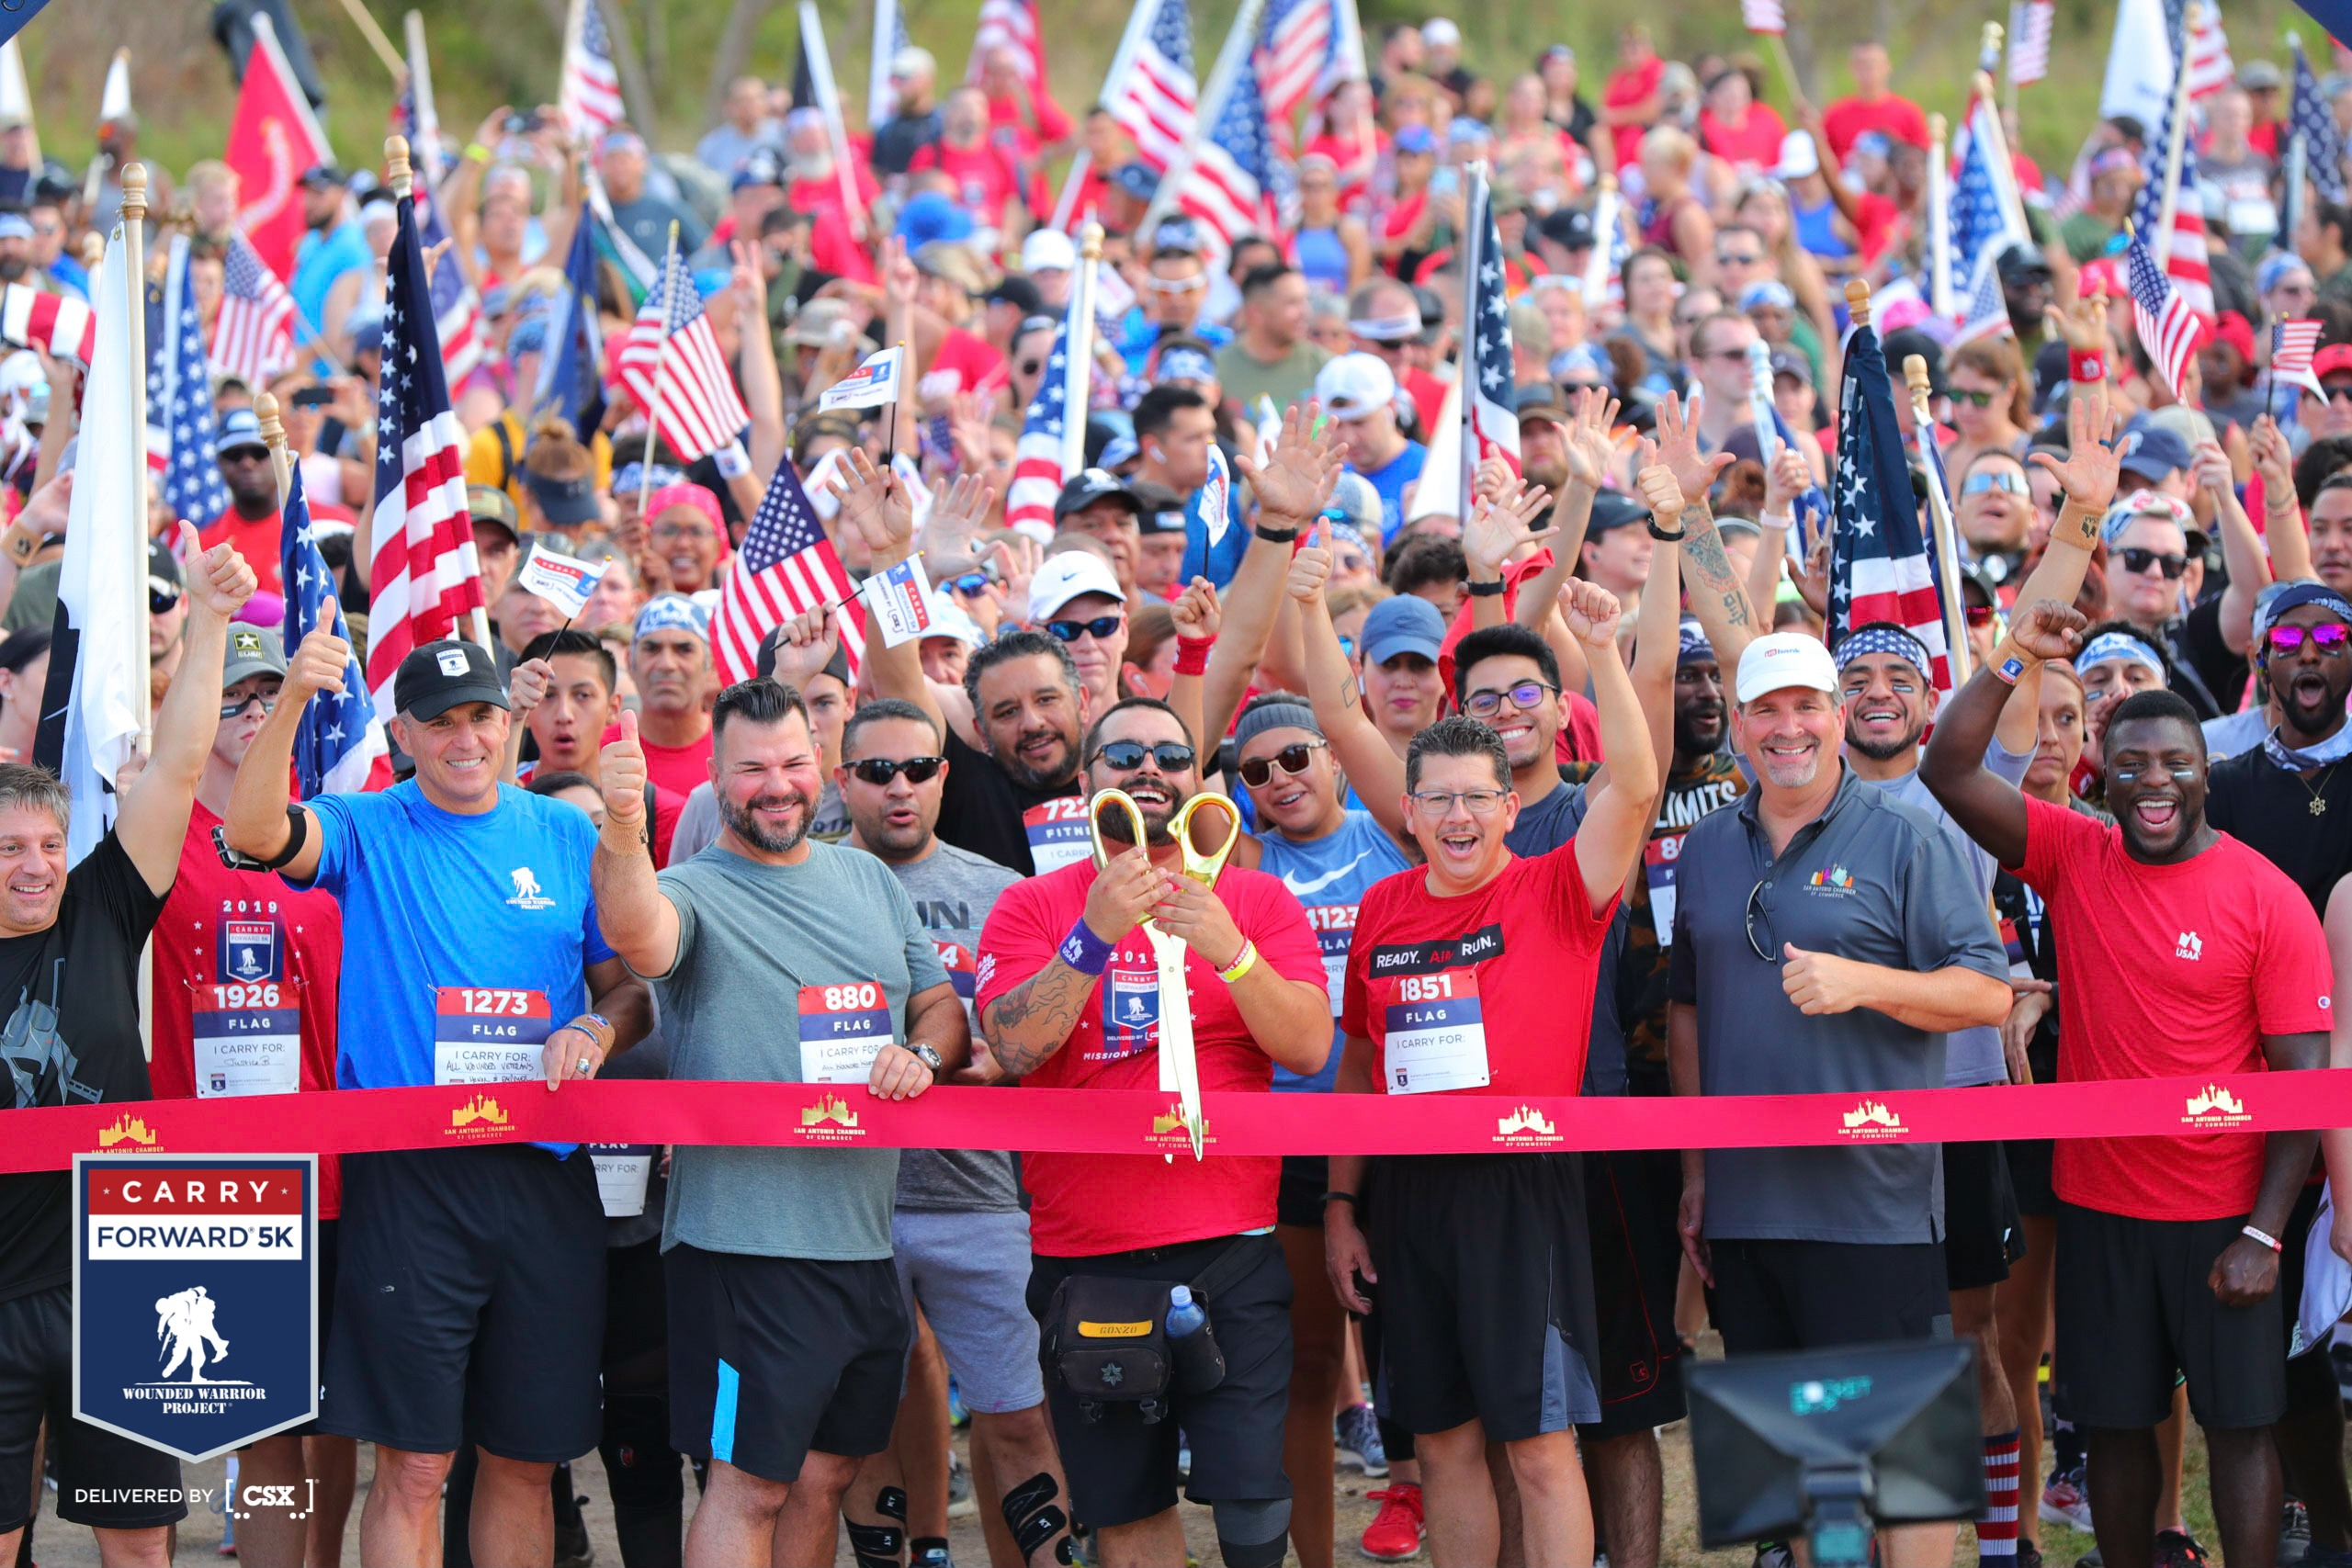 2019 WOUNDED WARRIOR PROJECT - CARRY FORWARD 5K